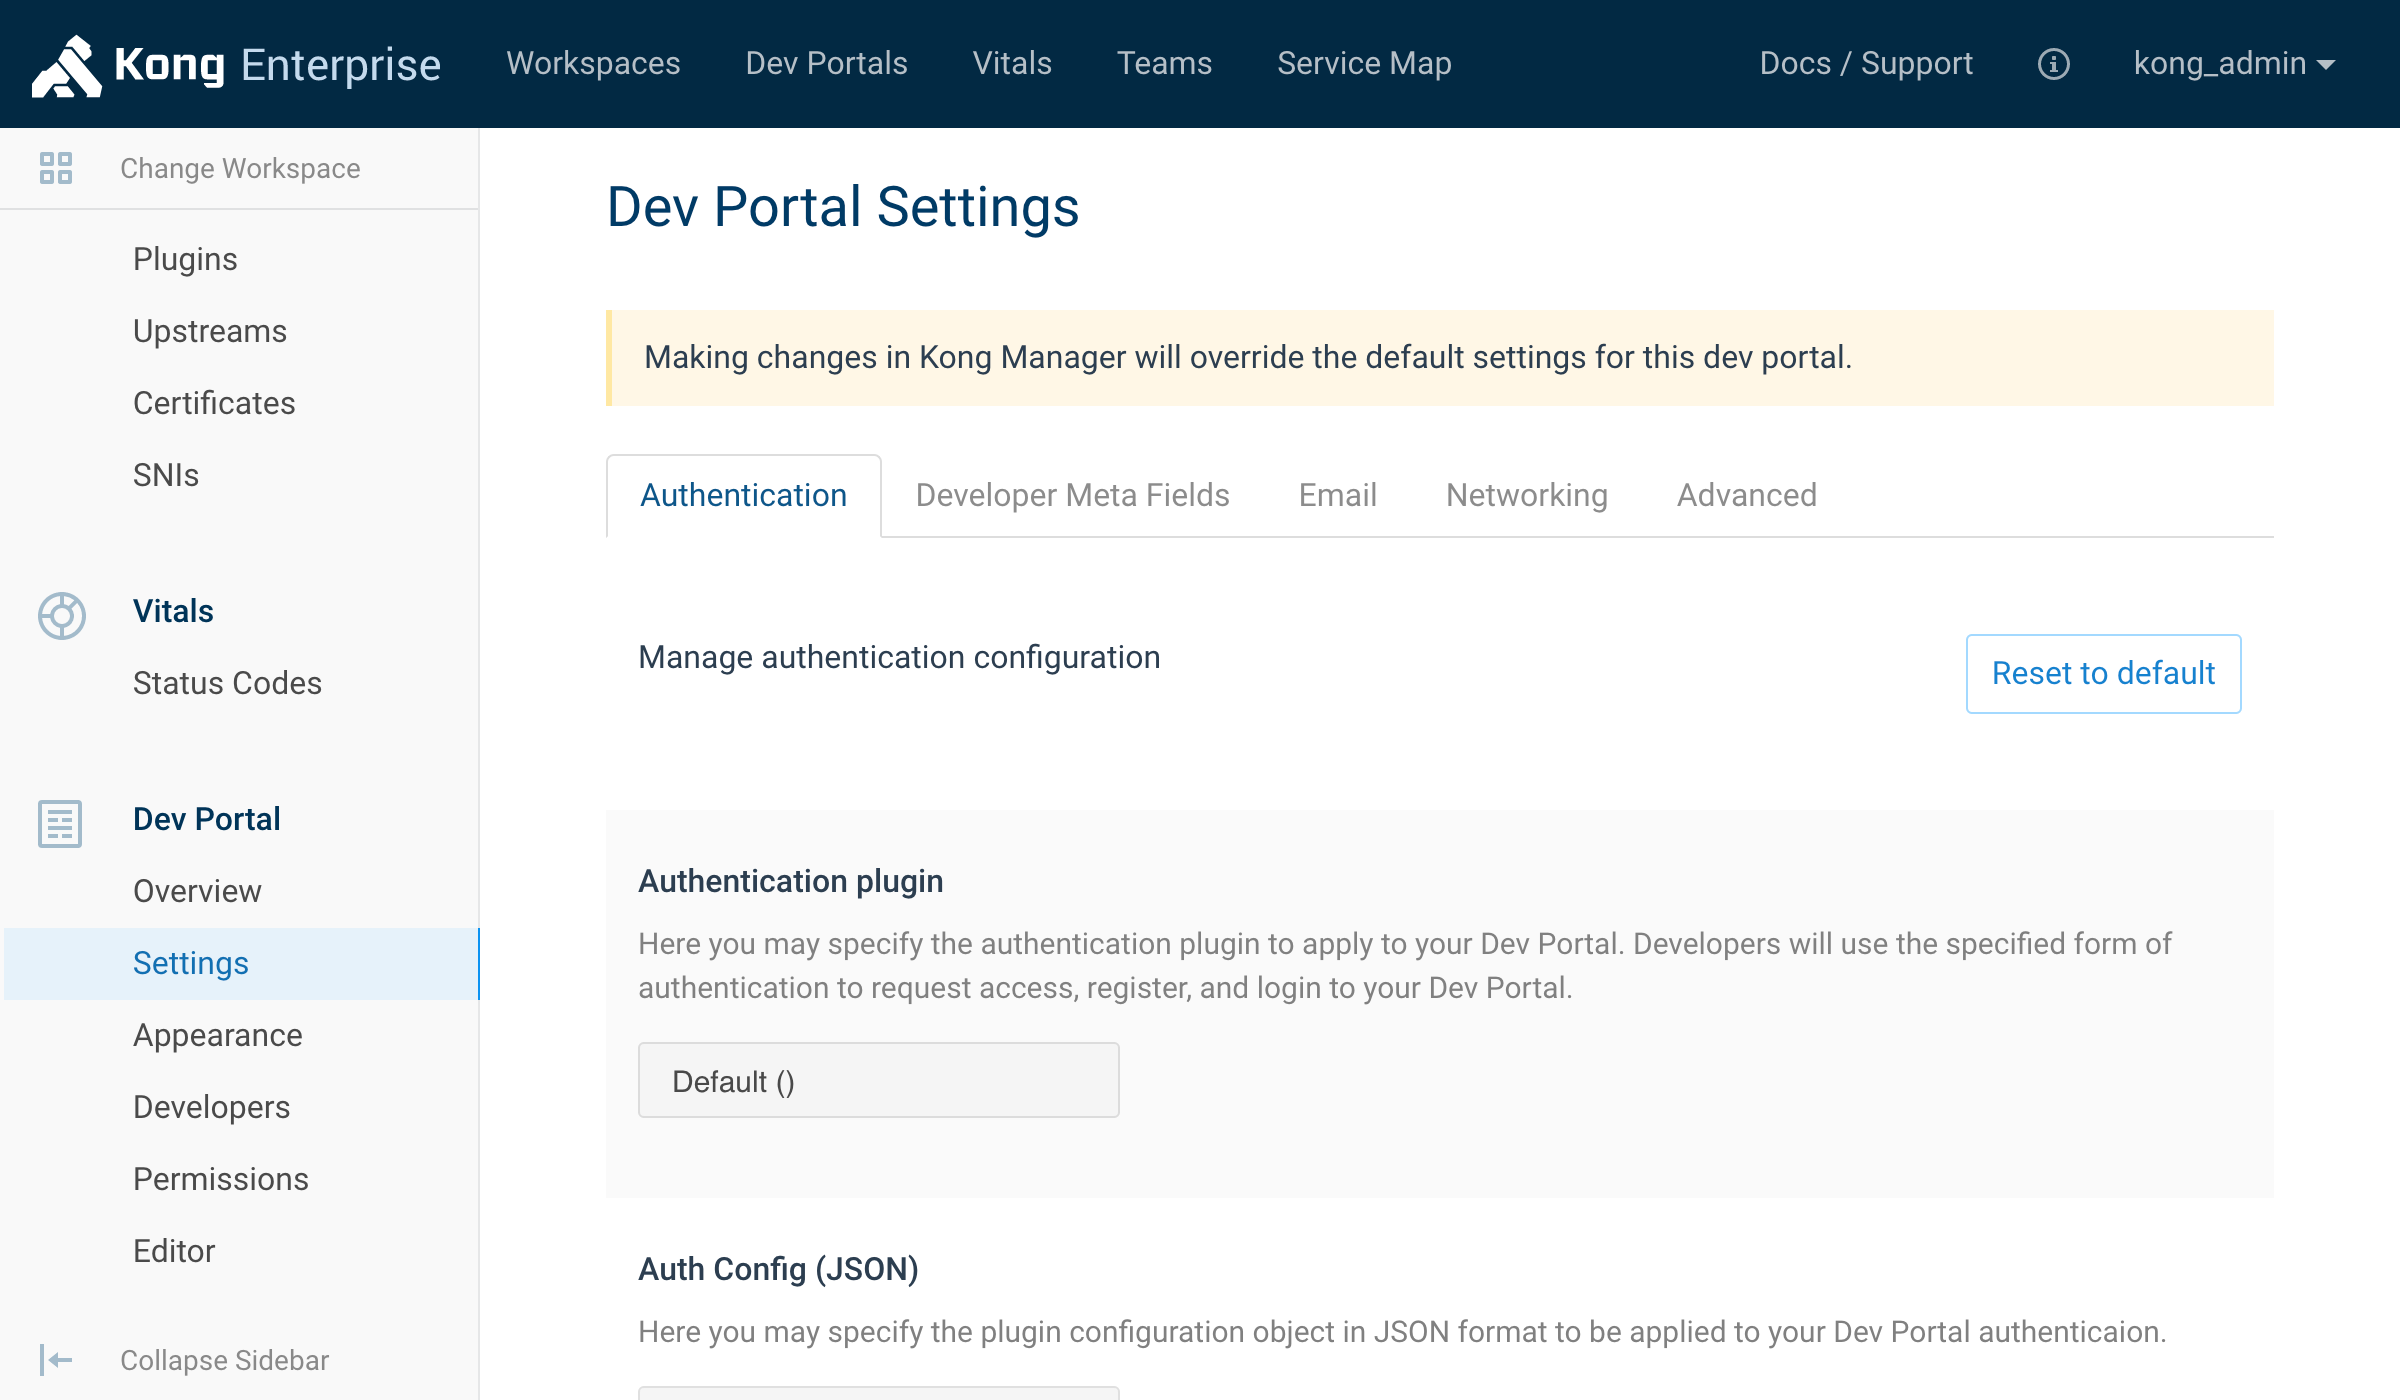 Dev Portal Settings